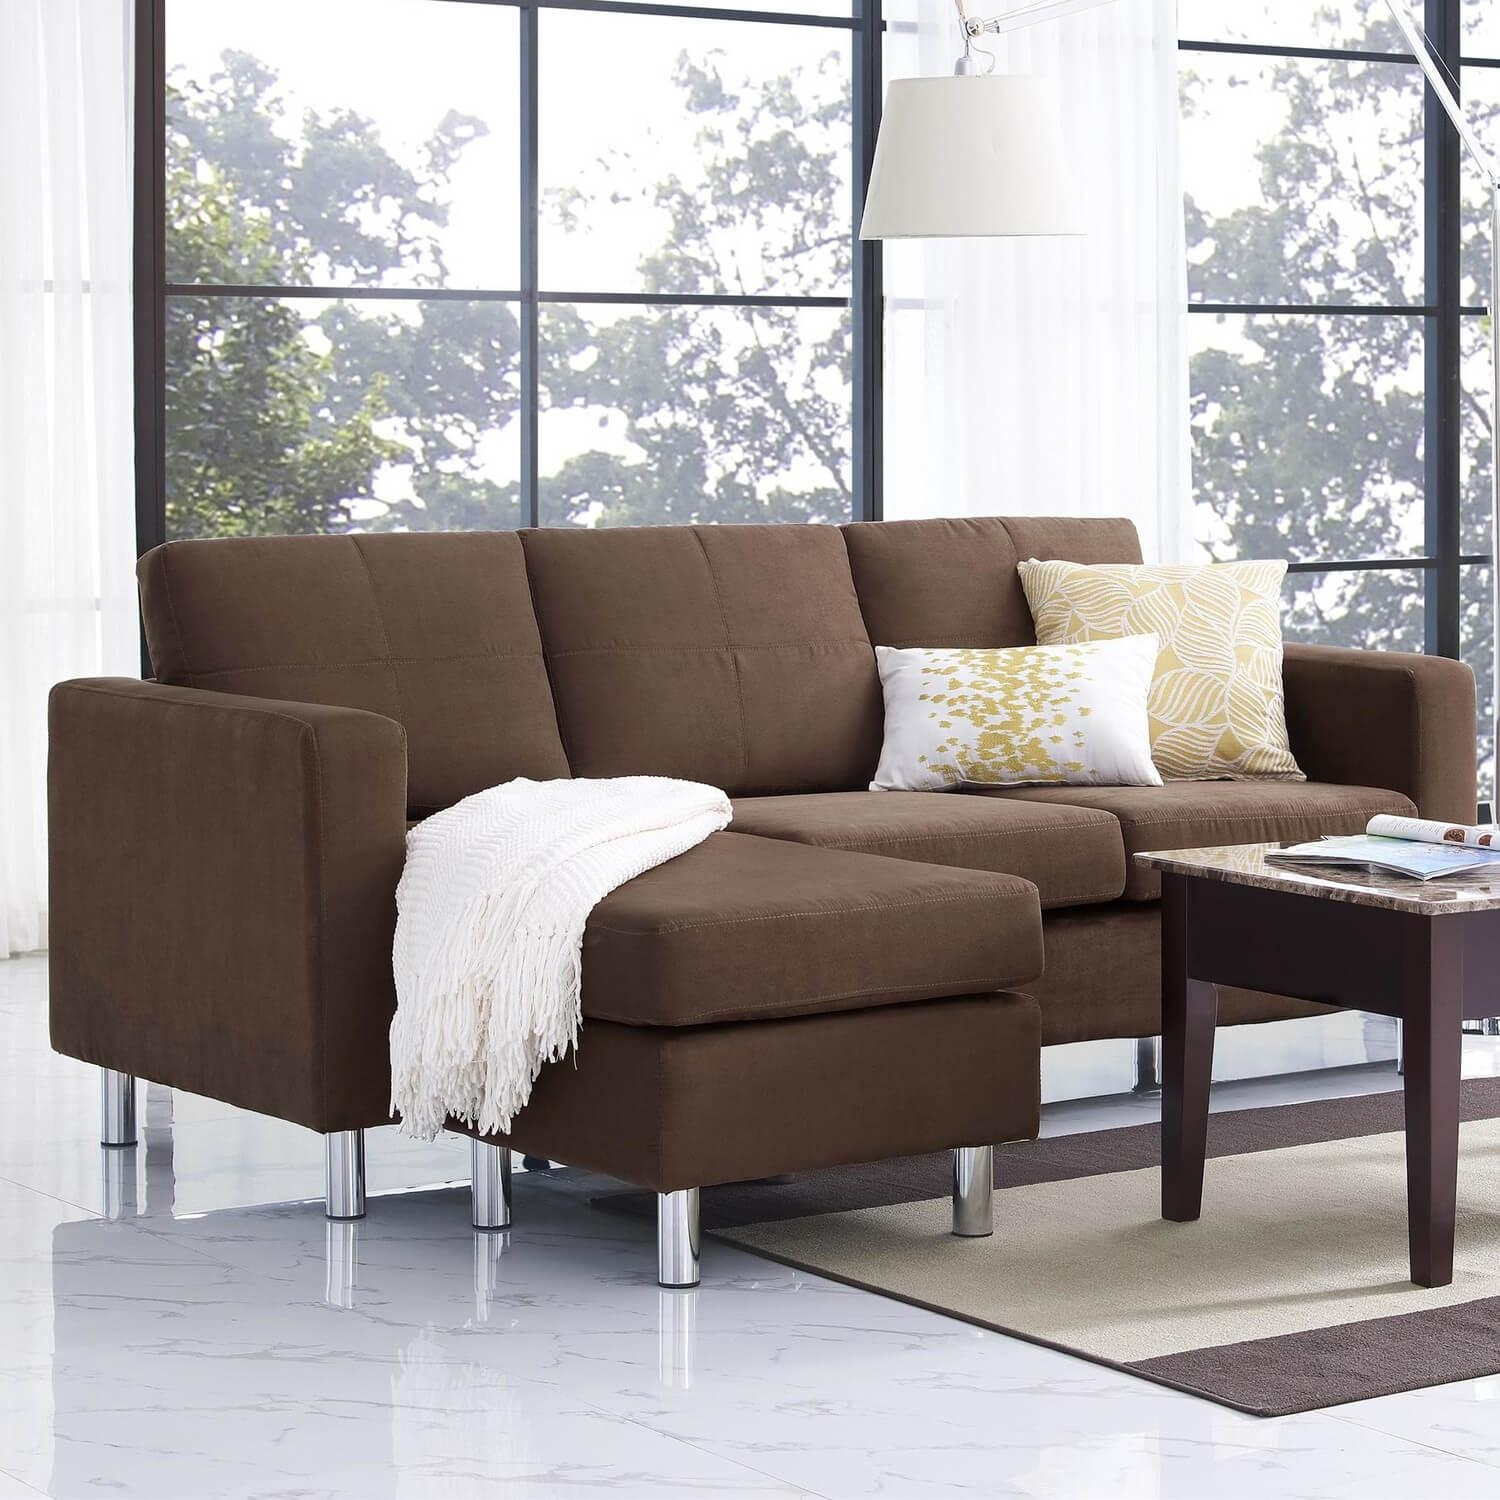 Furniture & Sofa: Best Sectional For Small Spaces | Small Space Pertaining To Small Sectional Sofas For Small Spaces (View 7 of 20)